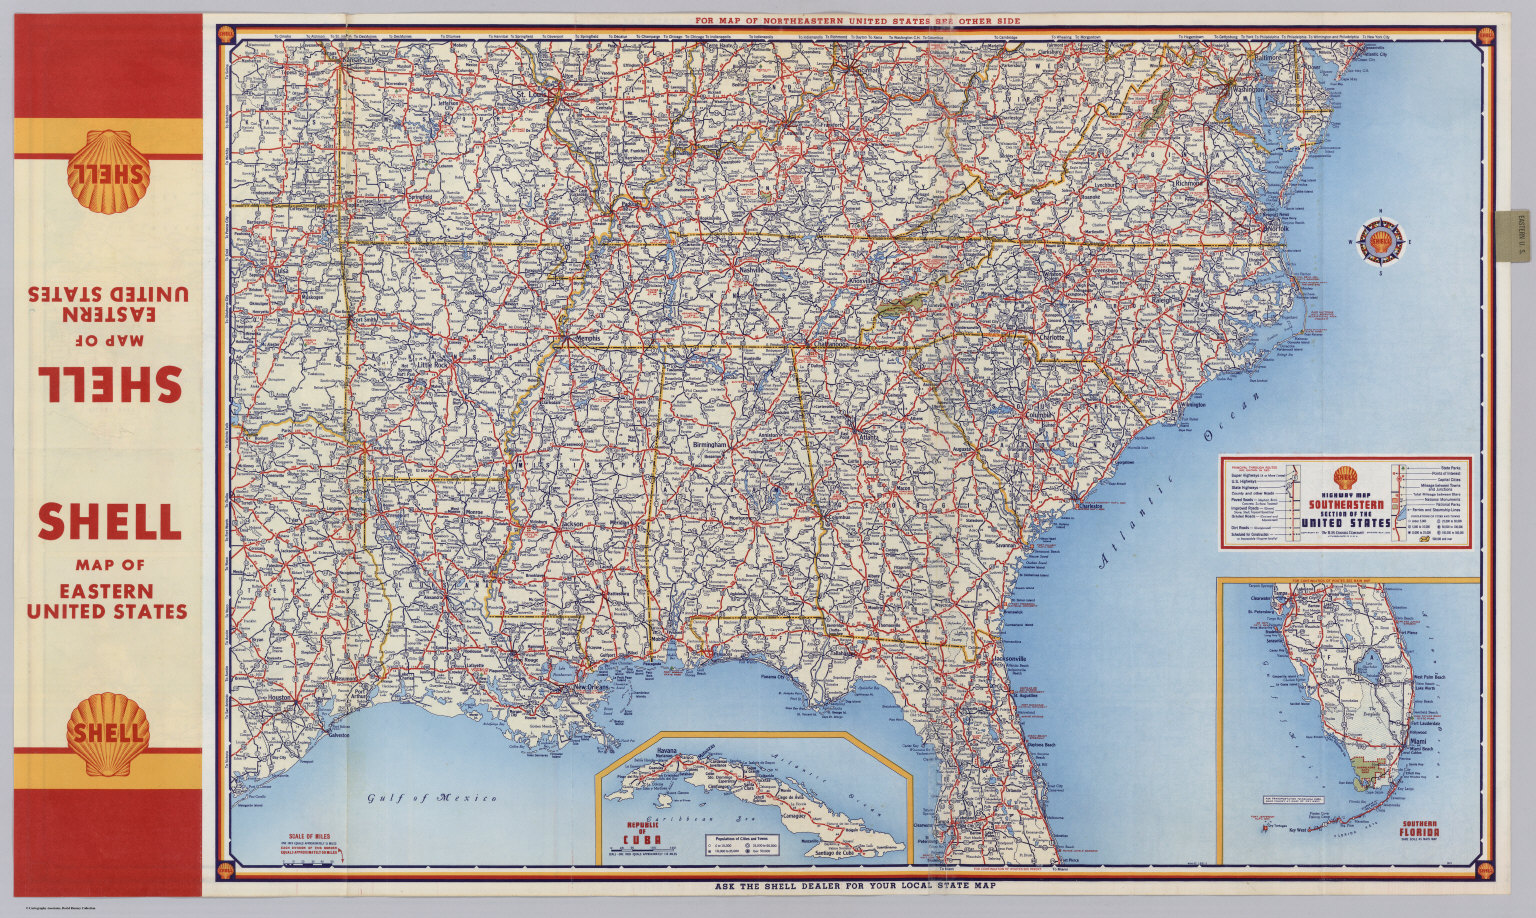 Shell Highway Map Southeastern Section Of The United States - Map of southeast us